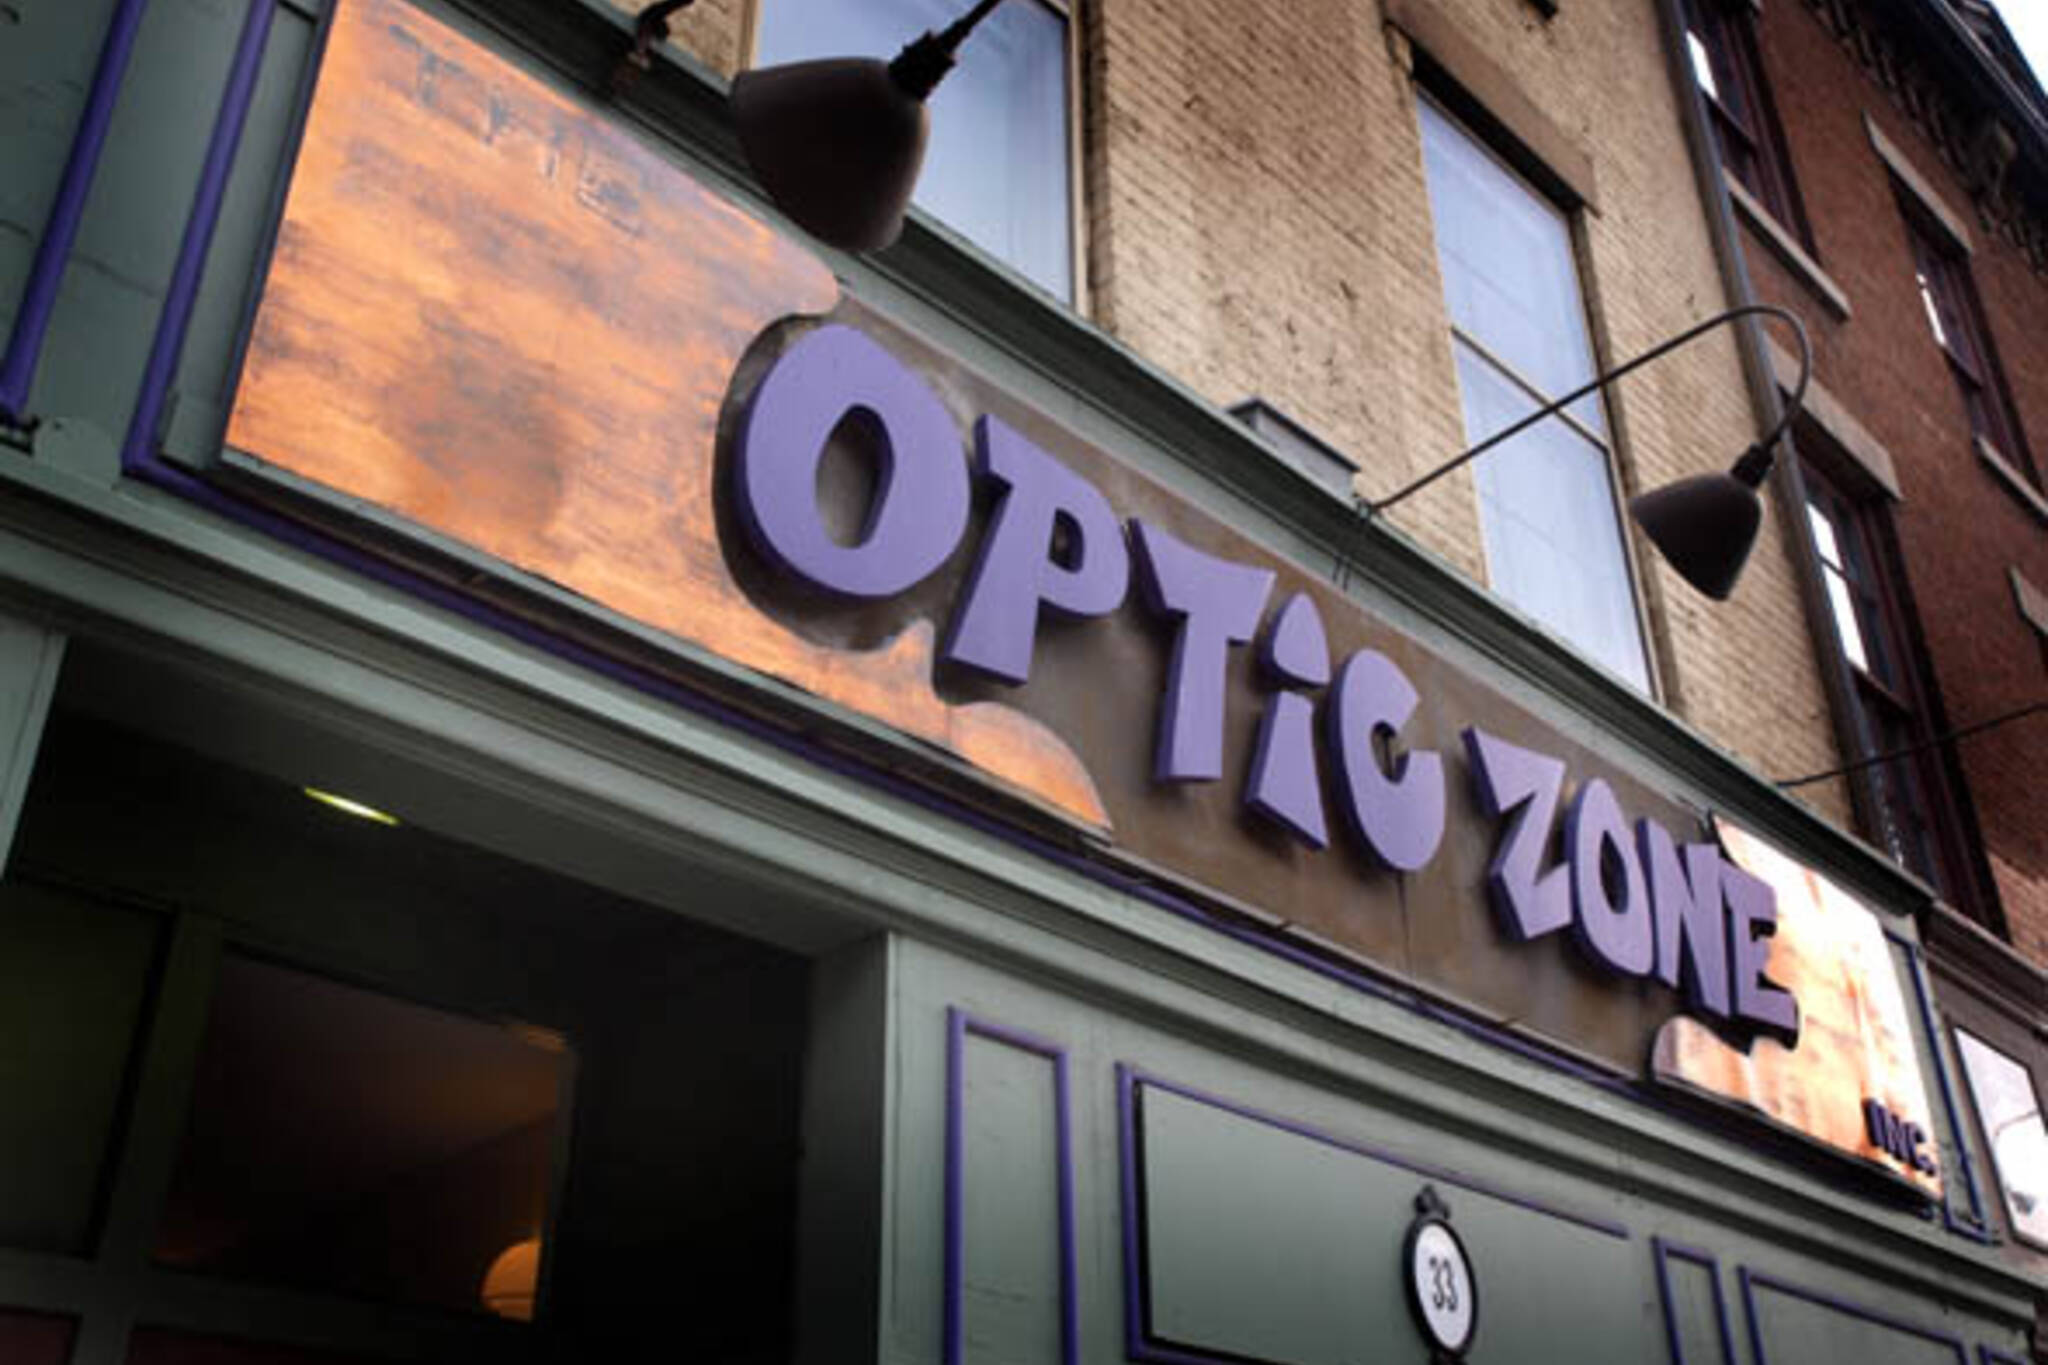 Optic Zone